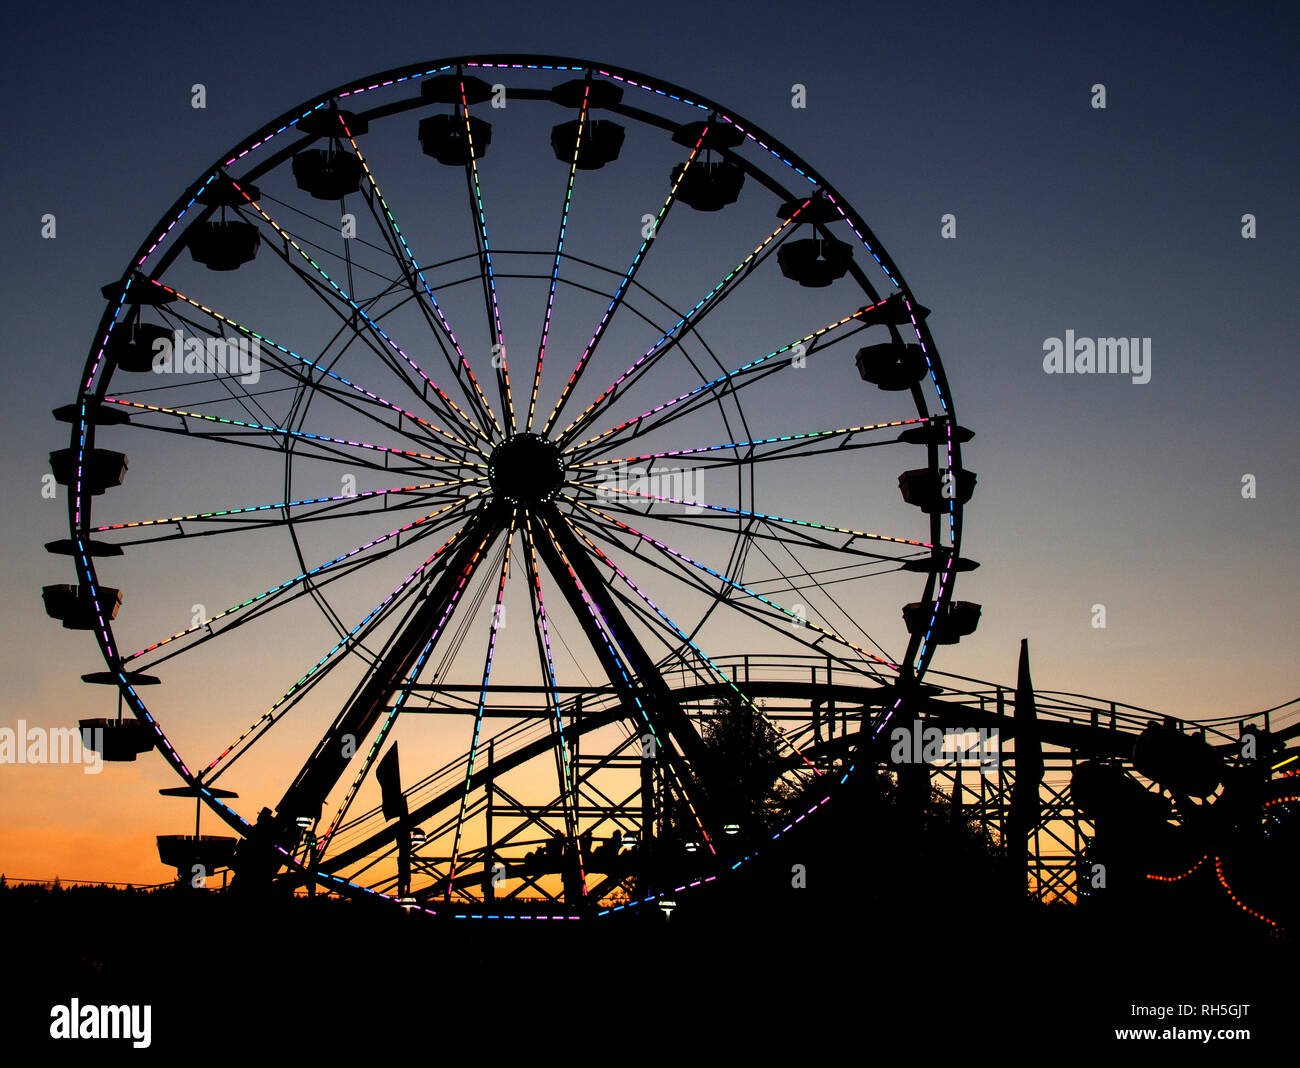 A ferris wheel at sunset - Stock Image